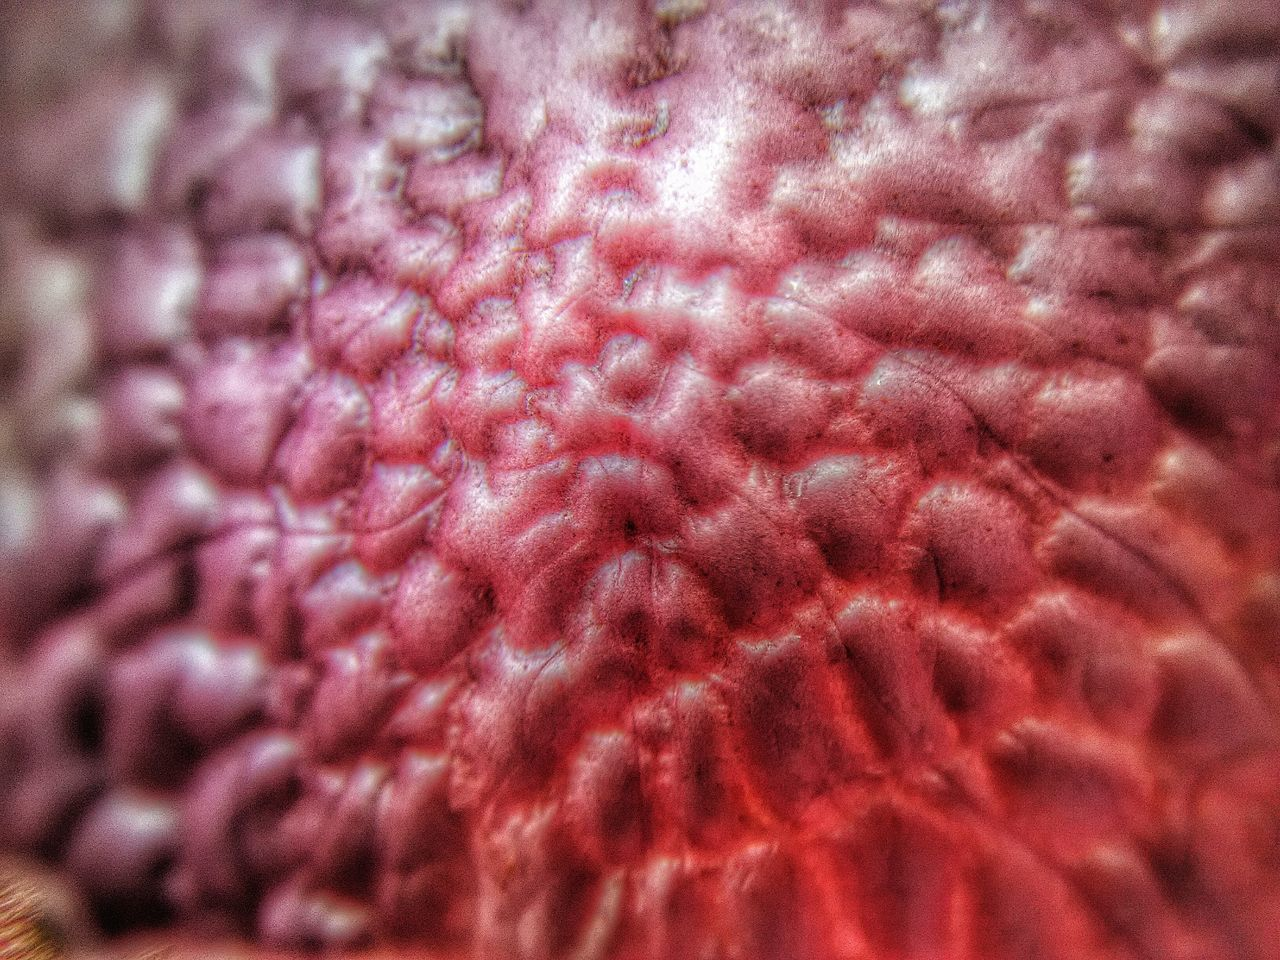 Lychee skin texture inside Backgrounds Better Look Twice Botany Close-up Design Detail Directly Above Dragon Skin Exotic Fruit EyeEm Macro EyeEm Nature Lover Focused Horizontal Ideas Lychee Skin Macro Photography Natural Pattern Pattern Pink Color Showcase: January Simplicity Softness Textured  Macro Beauty Pattern Pieces